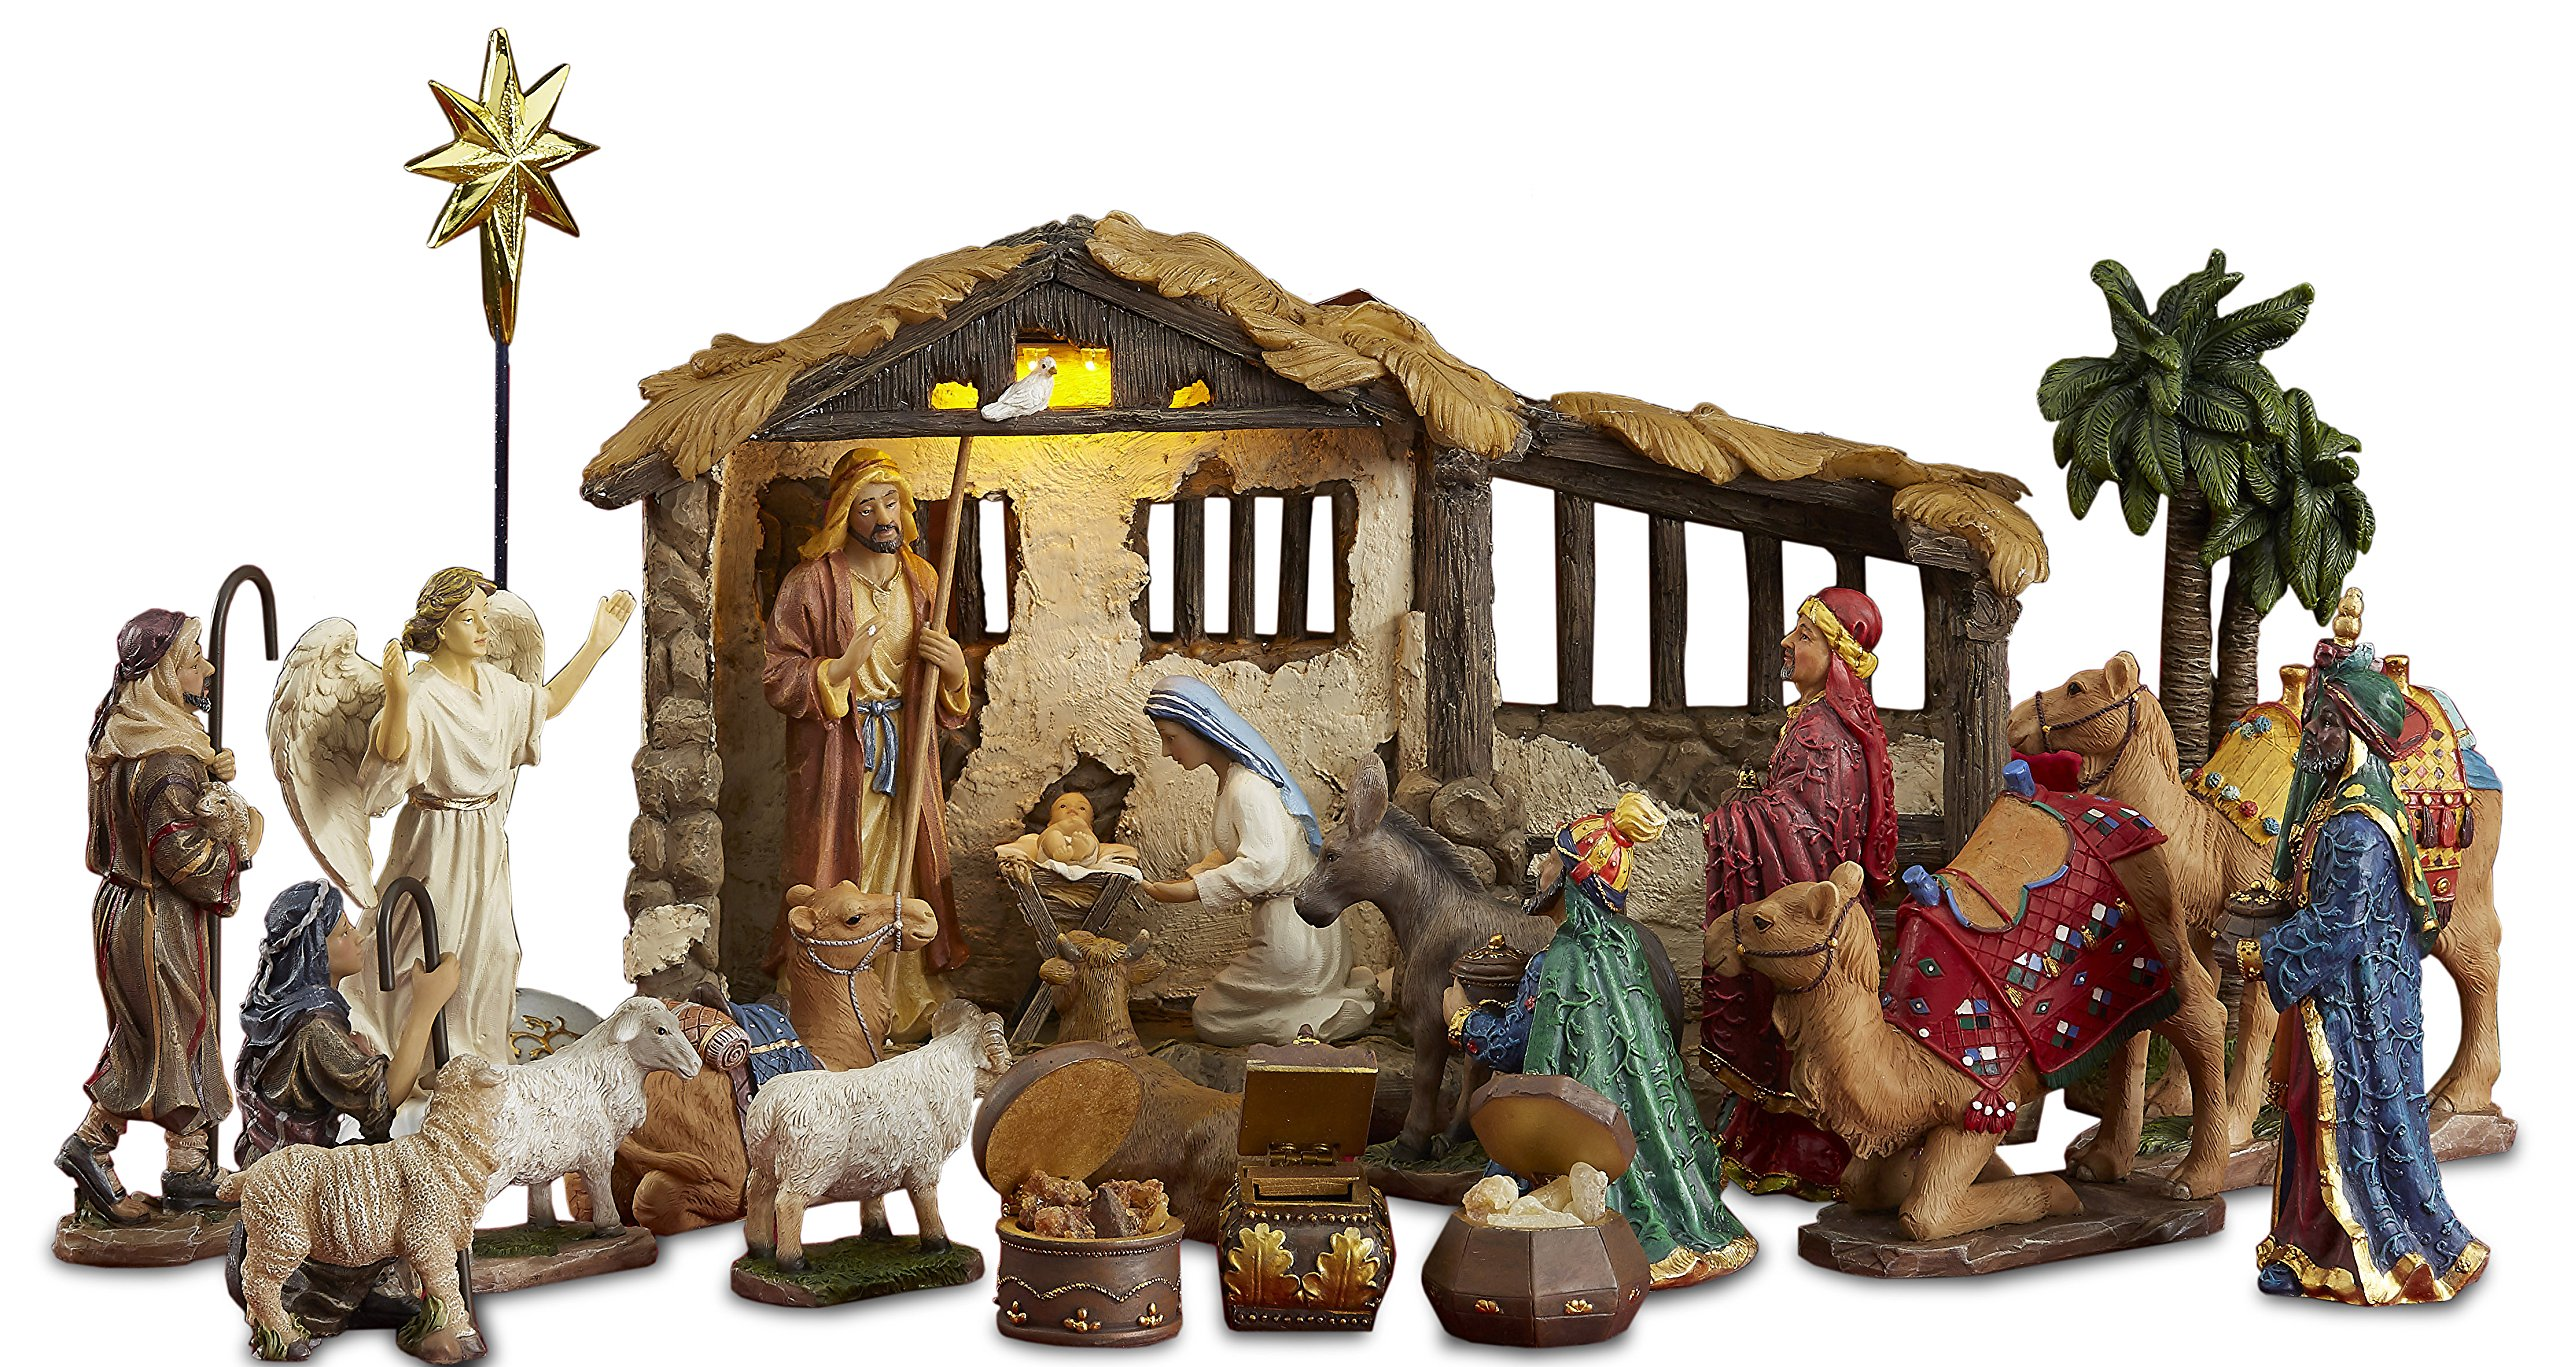 Three Kings Gifts 23 Pieces, 5-Inch The Real Life Nativity - Includes Lighted Stable, Palm Tree and Chests of Gold, Frankincense and Myrrh by Three Kings Gifts